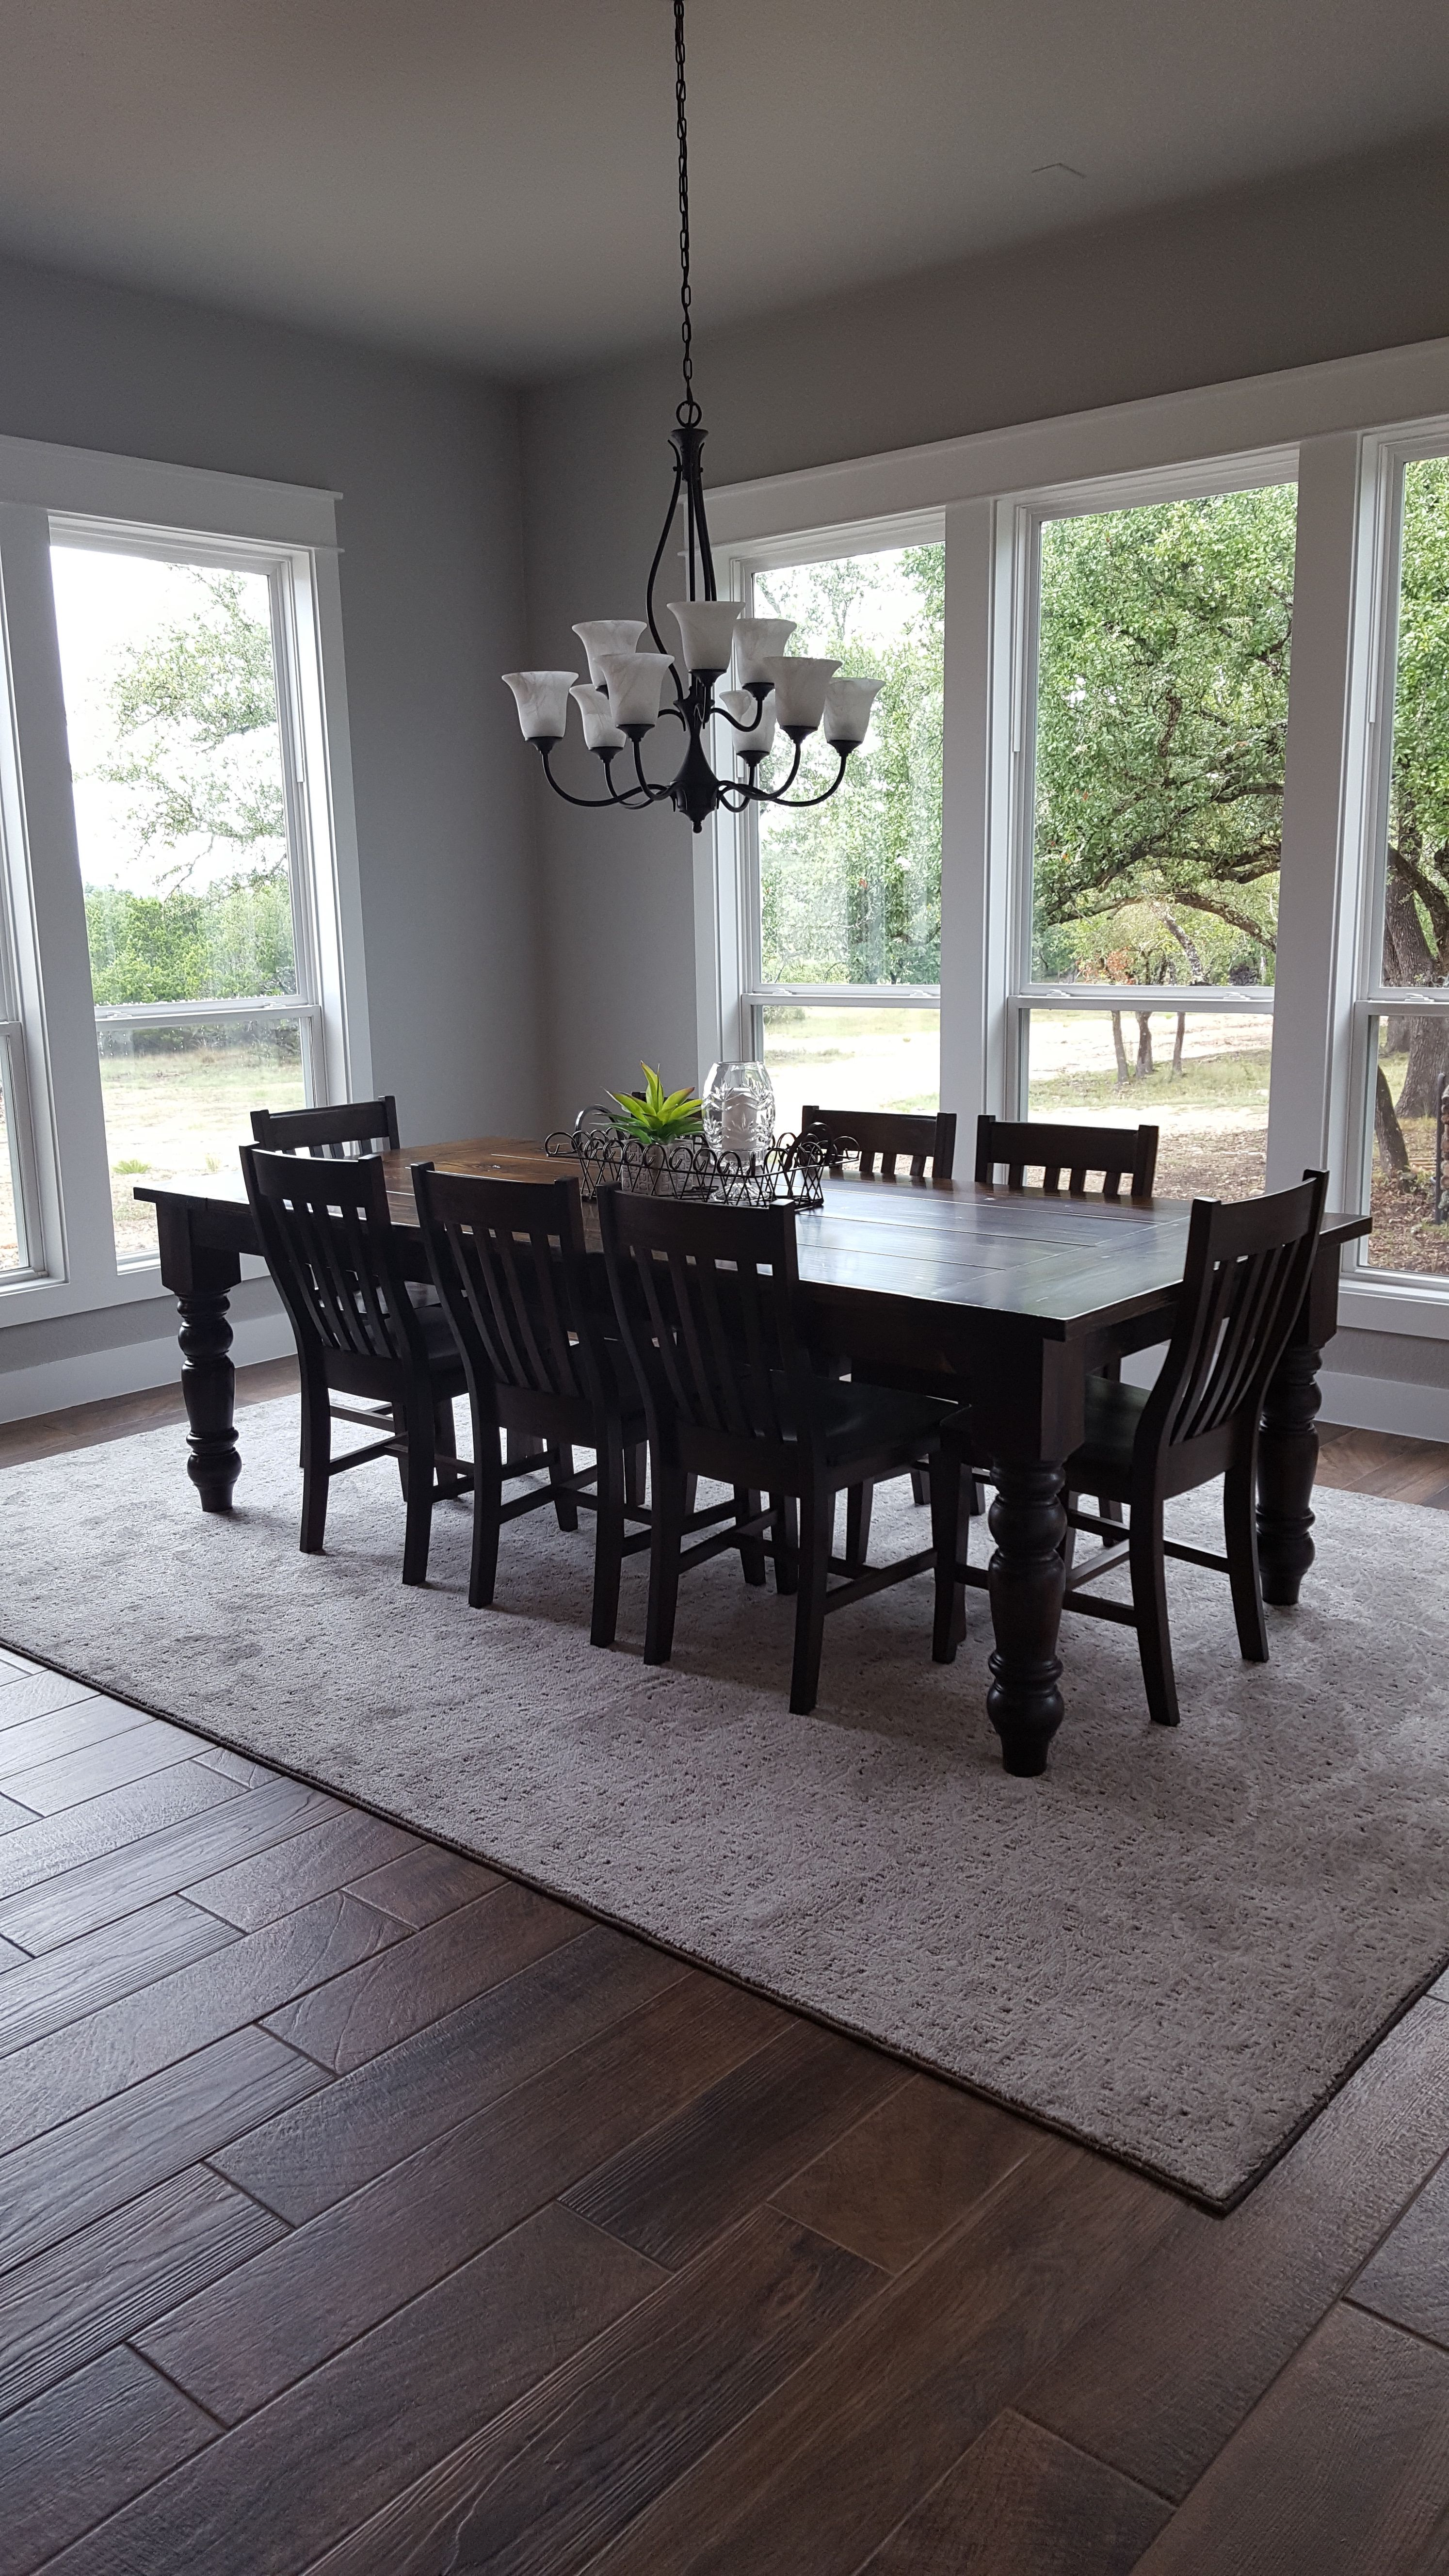 Beautiful Solid Wood Hand Made Baluster Turned Leg Dining Table In Dark Walnut Stain Dark Wood Dining Table Round Farmhouse Table Farmhouse Dining Room Table